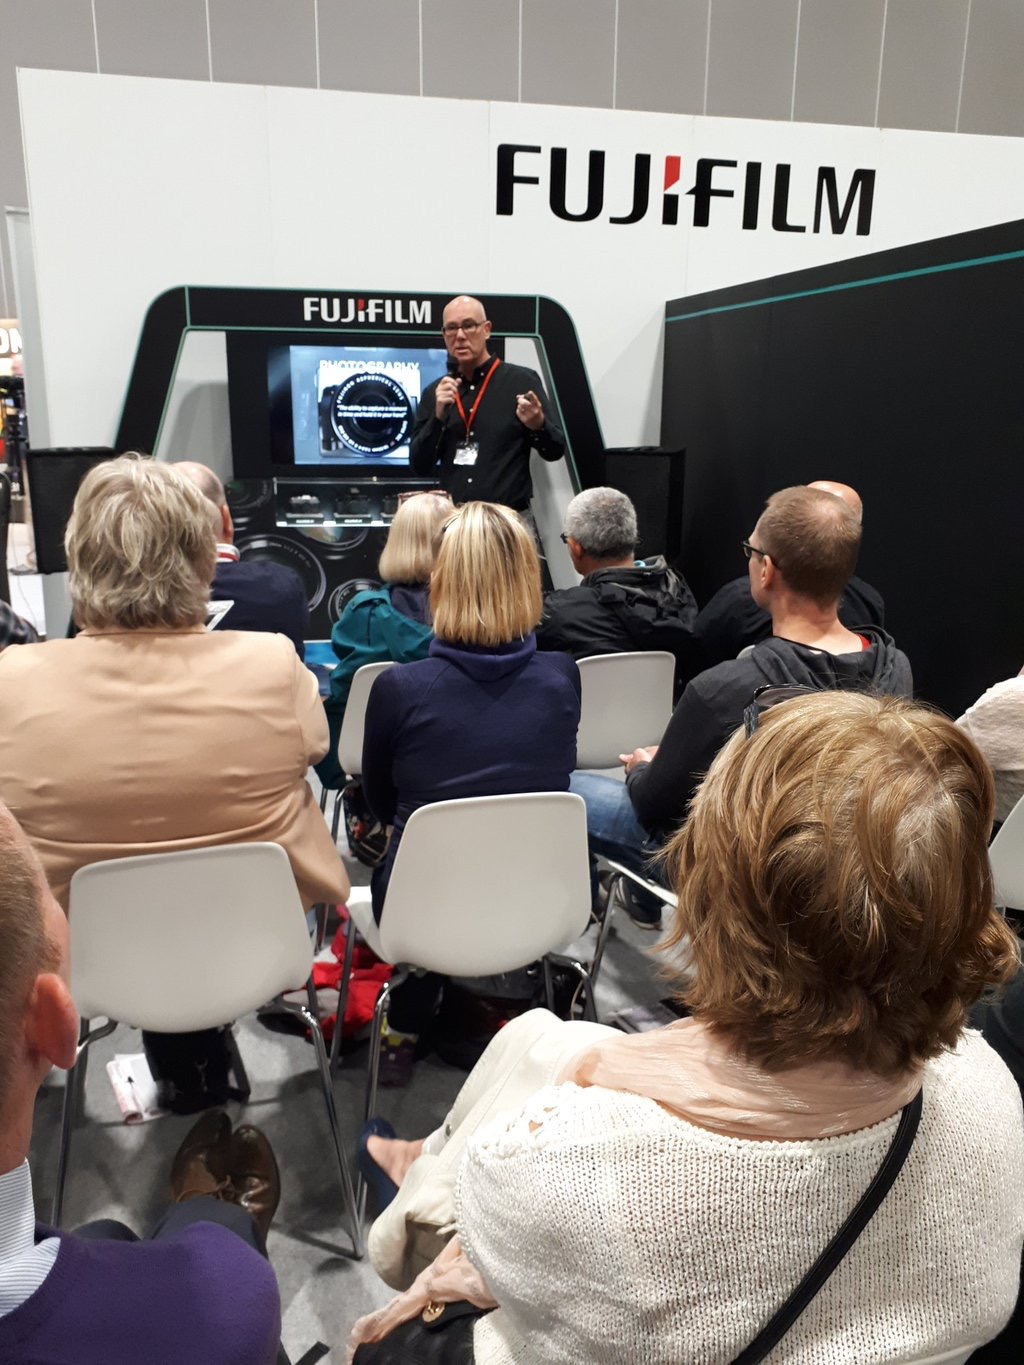 Yours truly on the FUJIFILM stand at DIGITAL SPLASH photo courtesy of  VICKI PROCTER